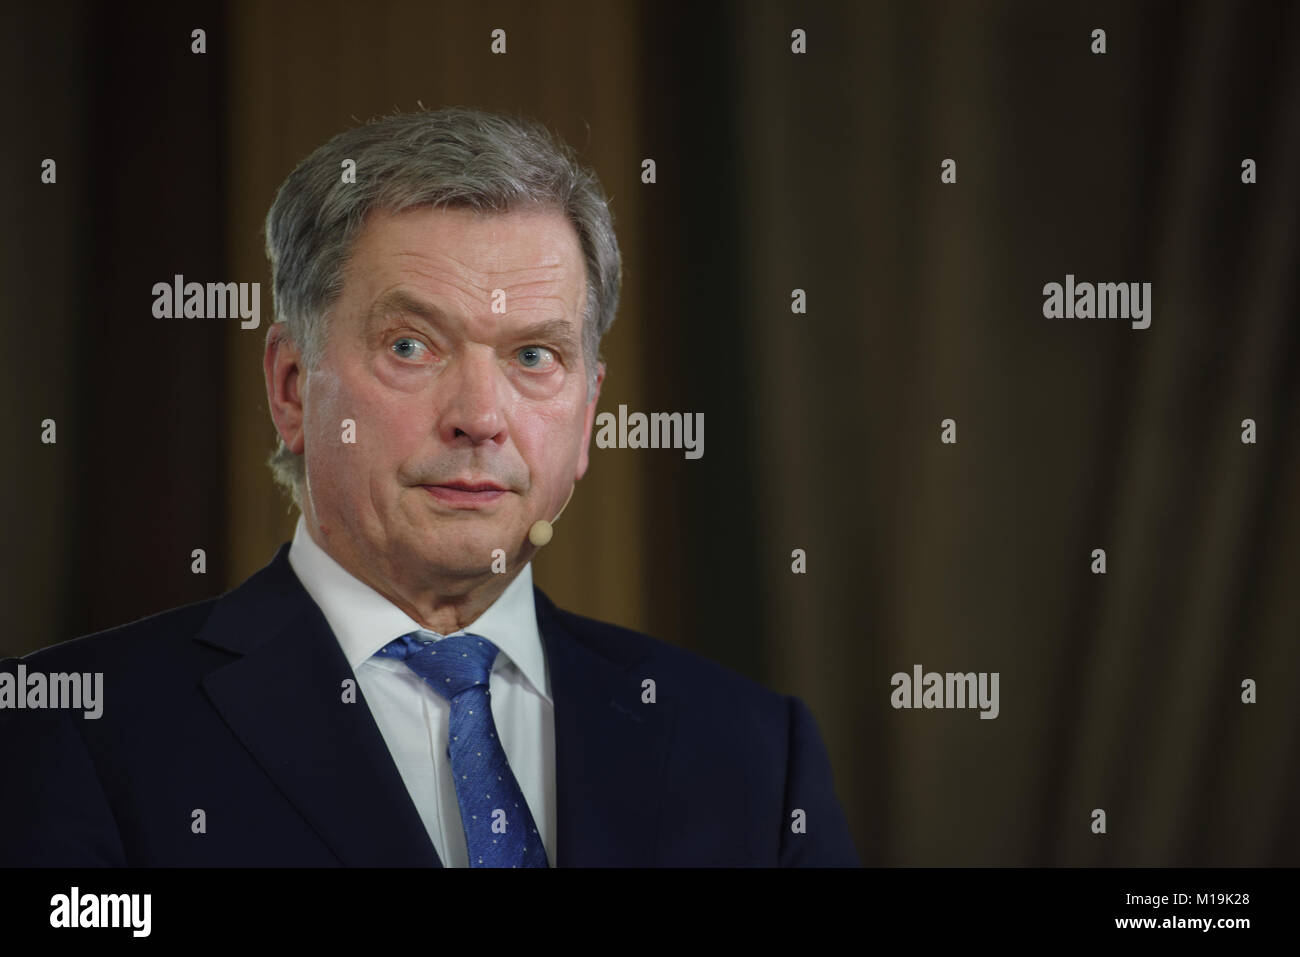 Helsinki, Finland. 28th Jan, 2018. Sauli Niinistö gives short comment on the elections in the House of Estates. - Stock Image